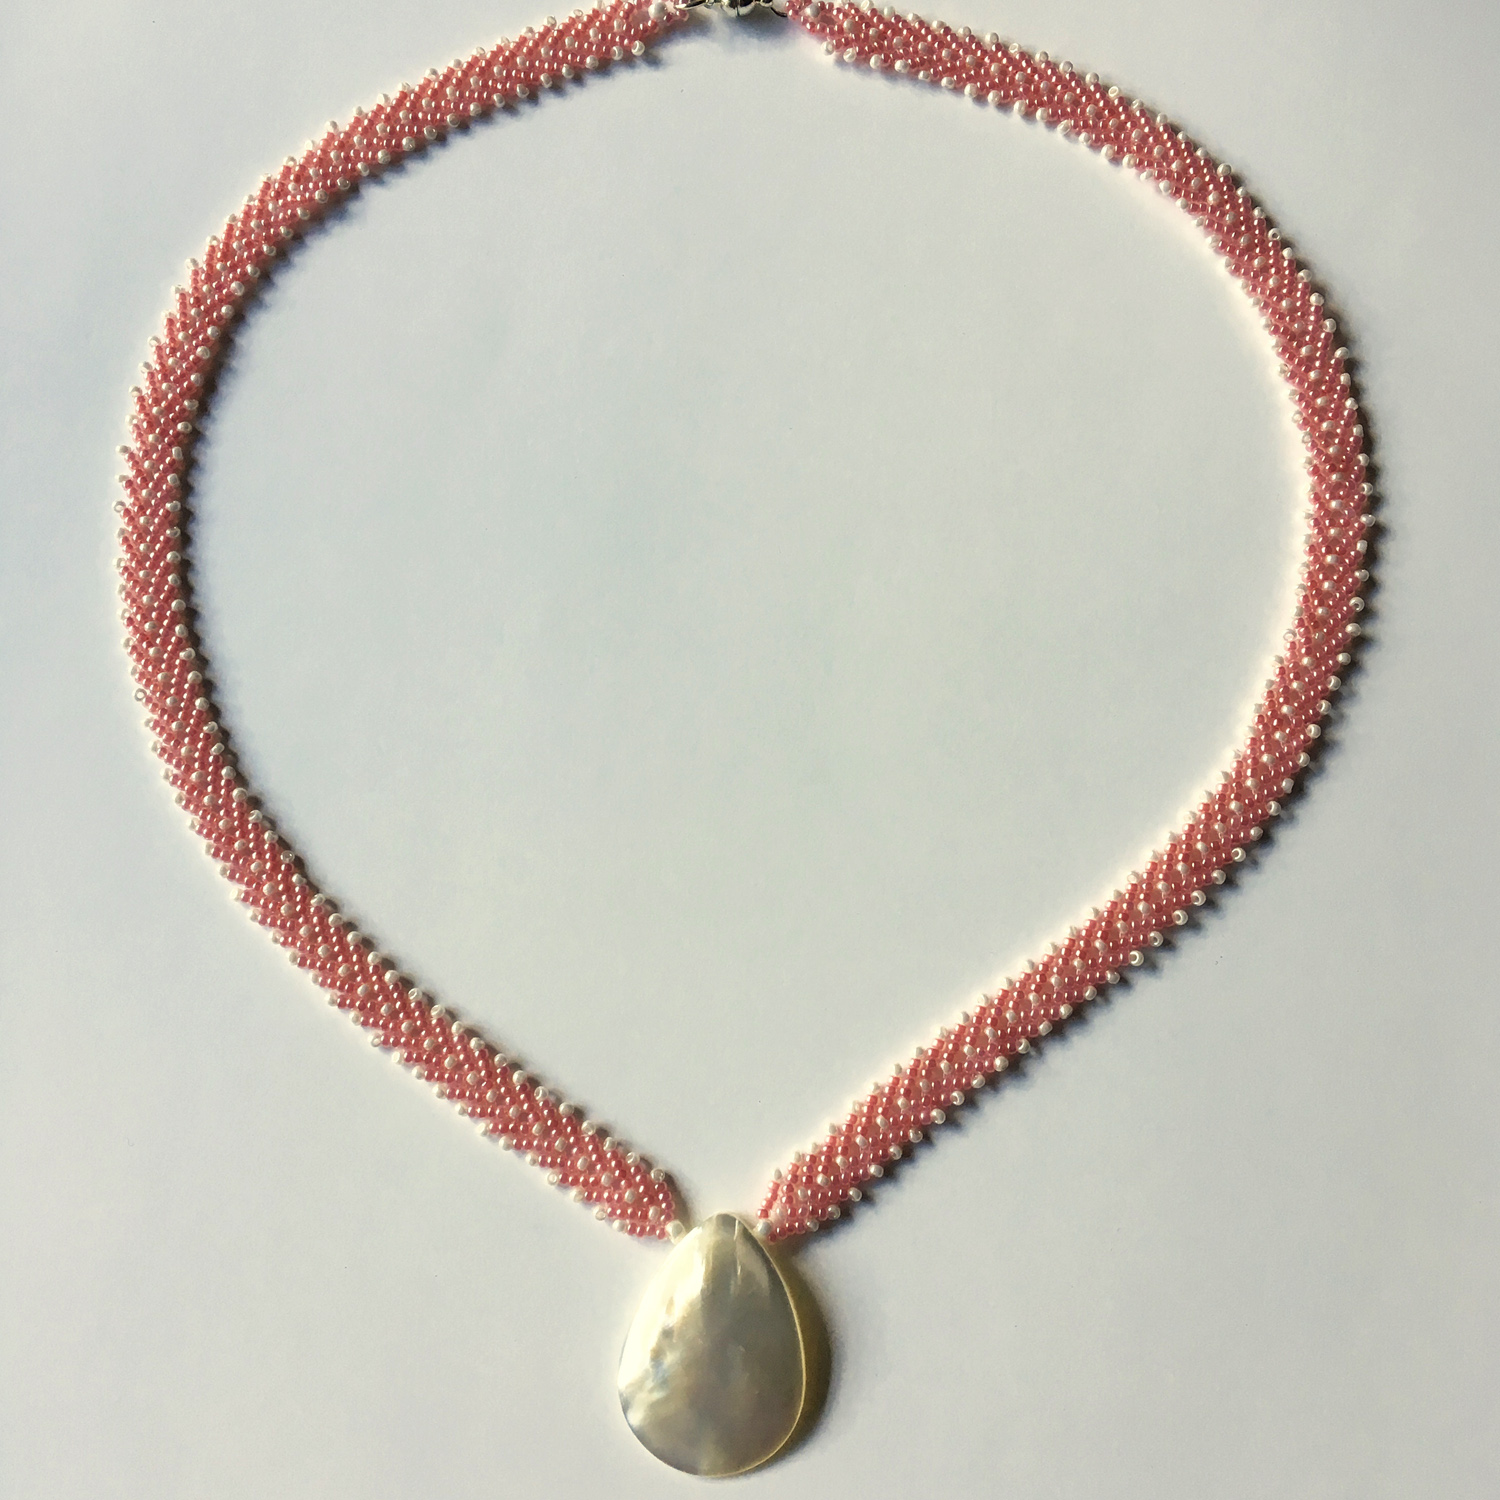 Coral and Mother-of-Pearl Necklace